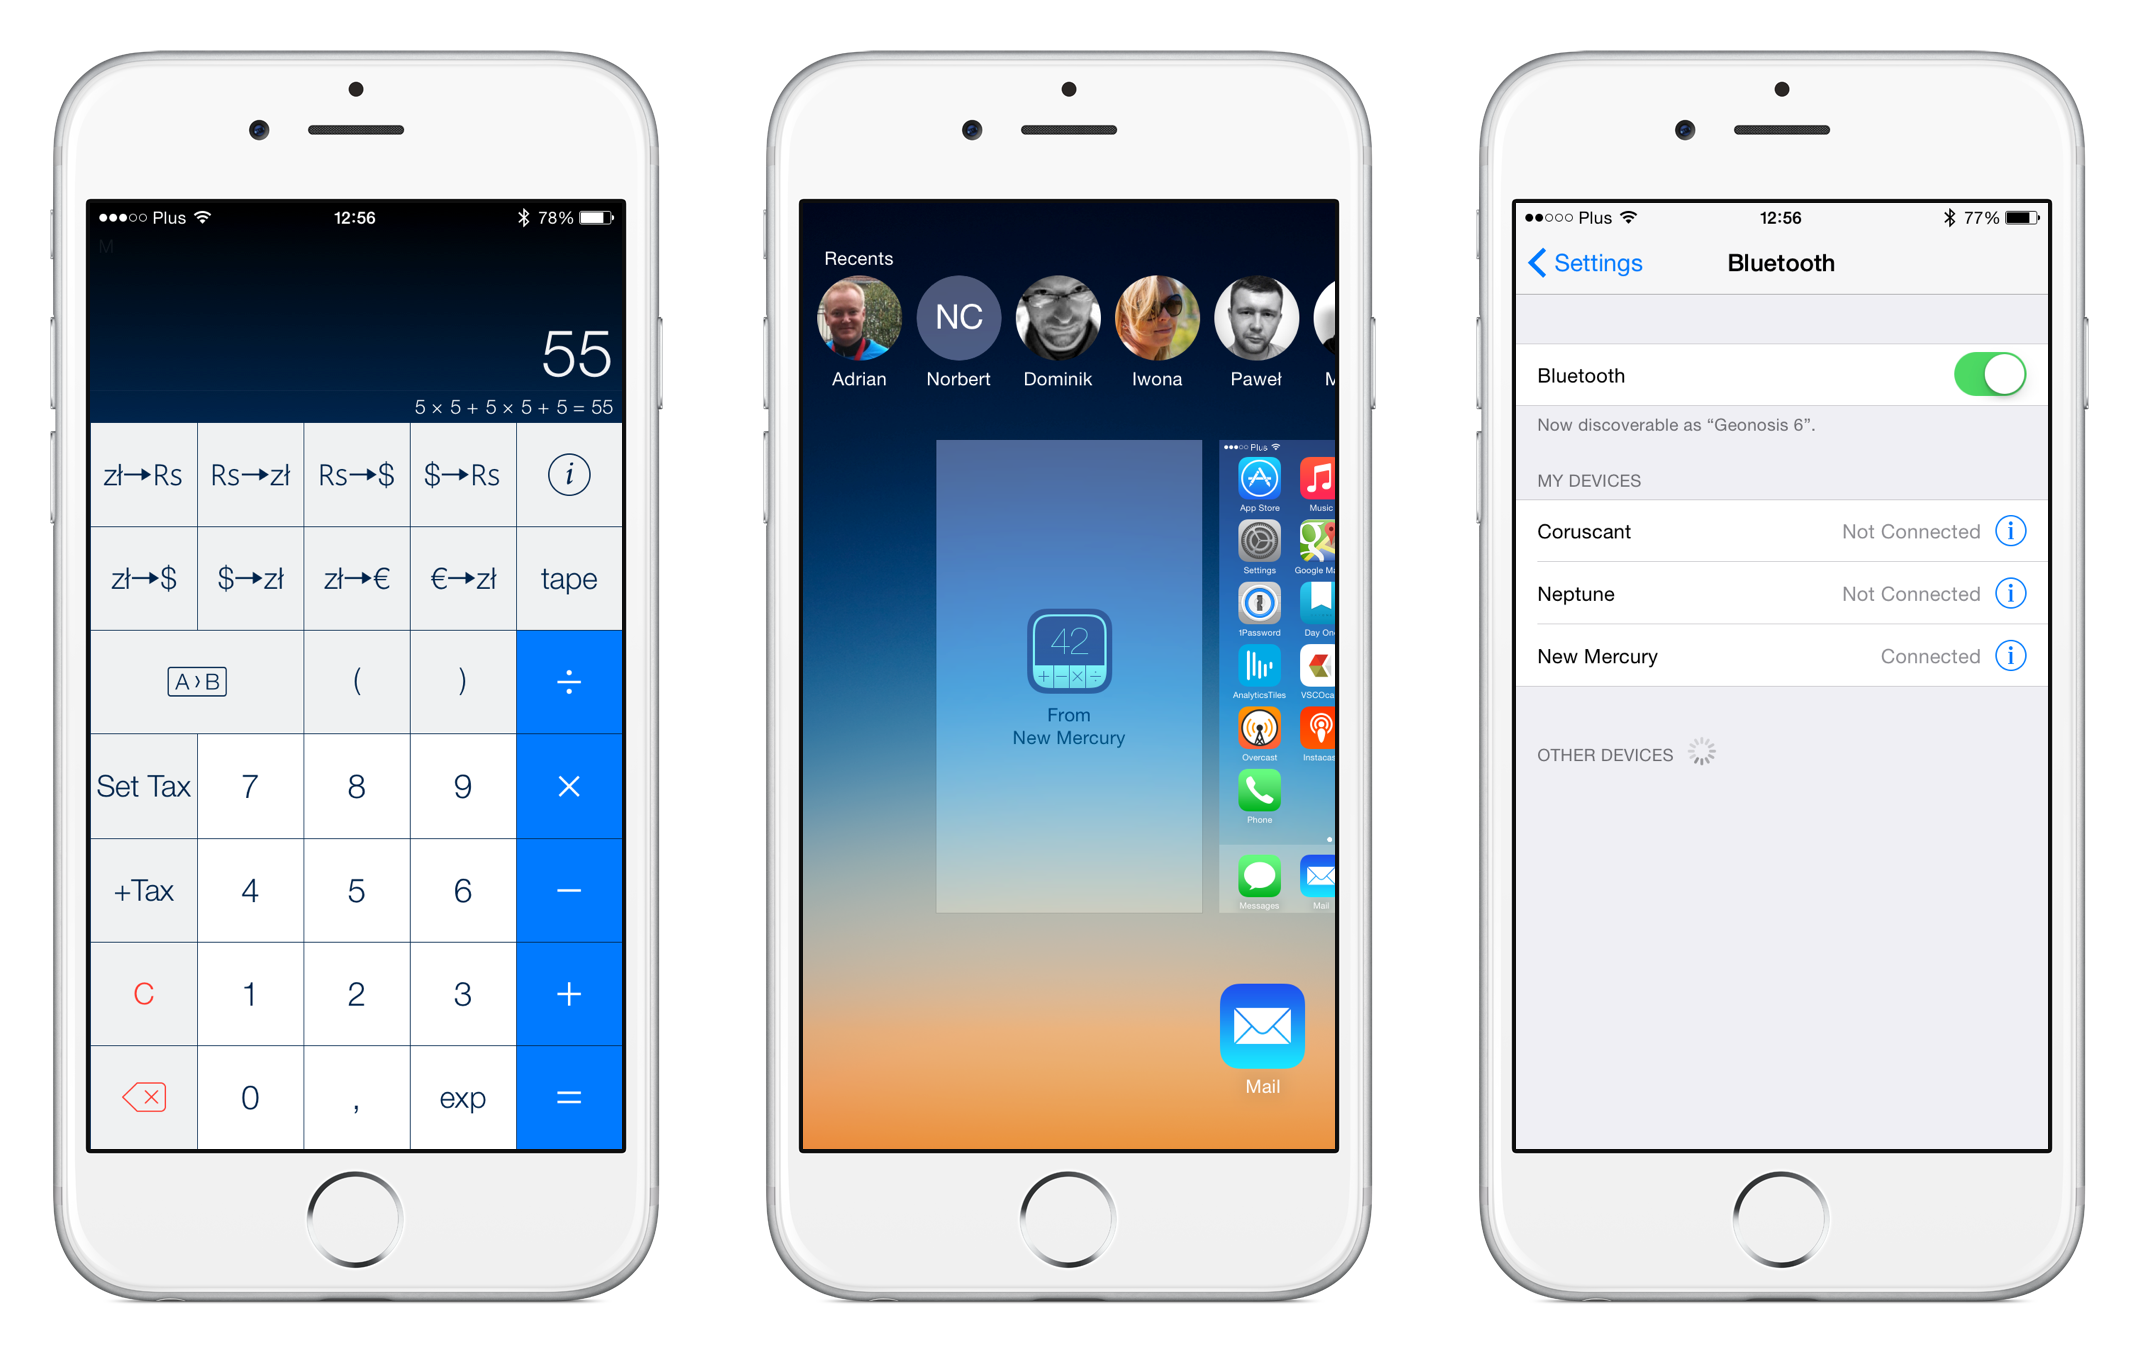 Left: PCalc synced with OS X. Middle: Handoff card in multitasking tray. Right: Bluetooth settings.